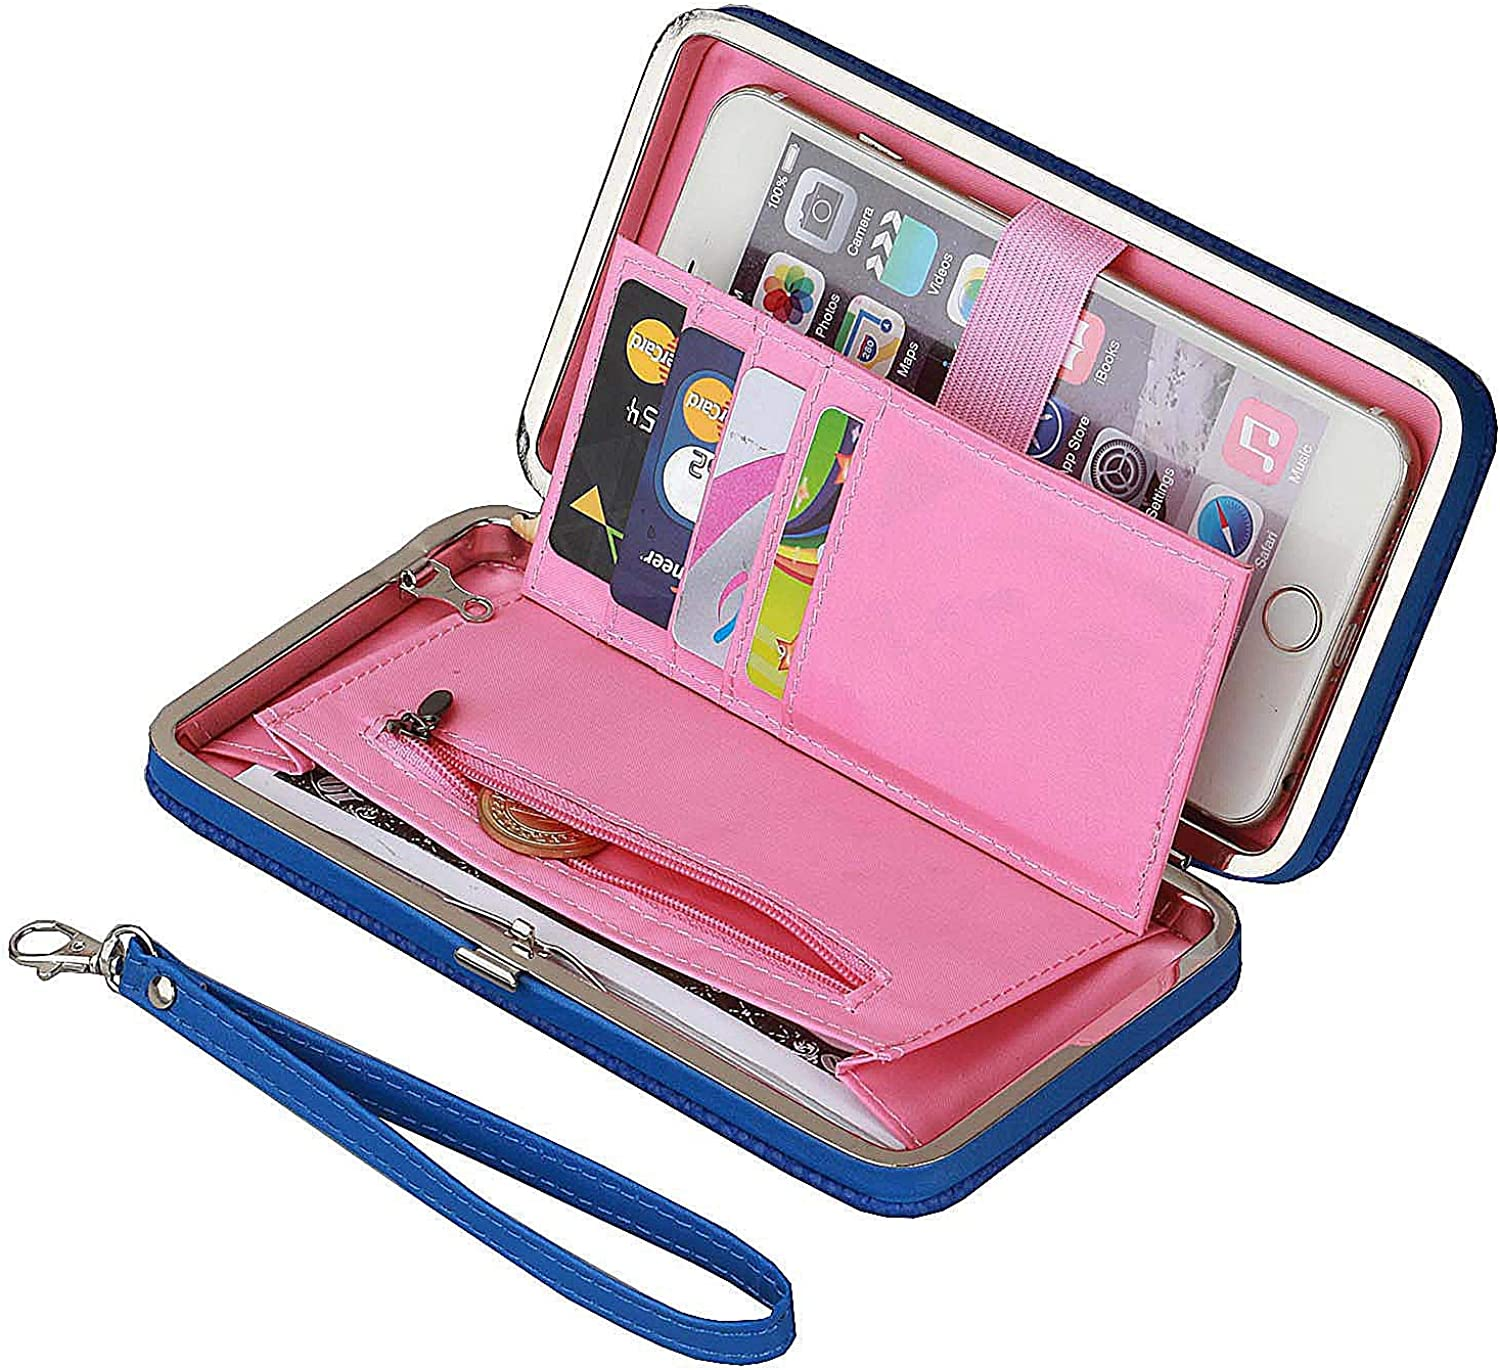 Litchi Prints Phone Wallet Case for Women Bow Leather Long Clutch Wallet Purse for 6 inch Cellphone Card Wristlet Handbag